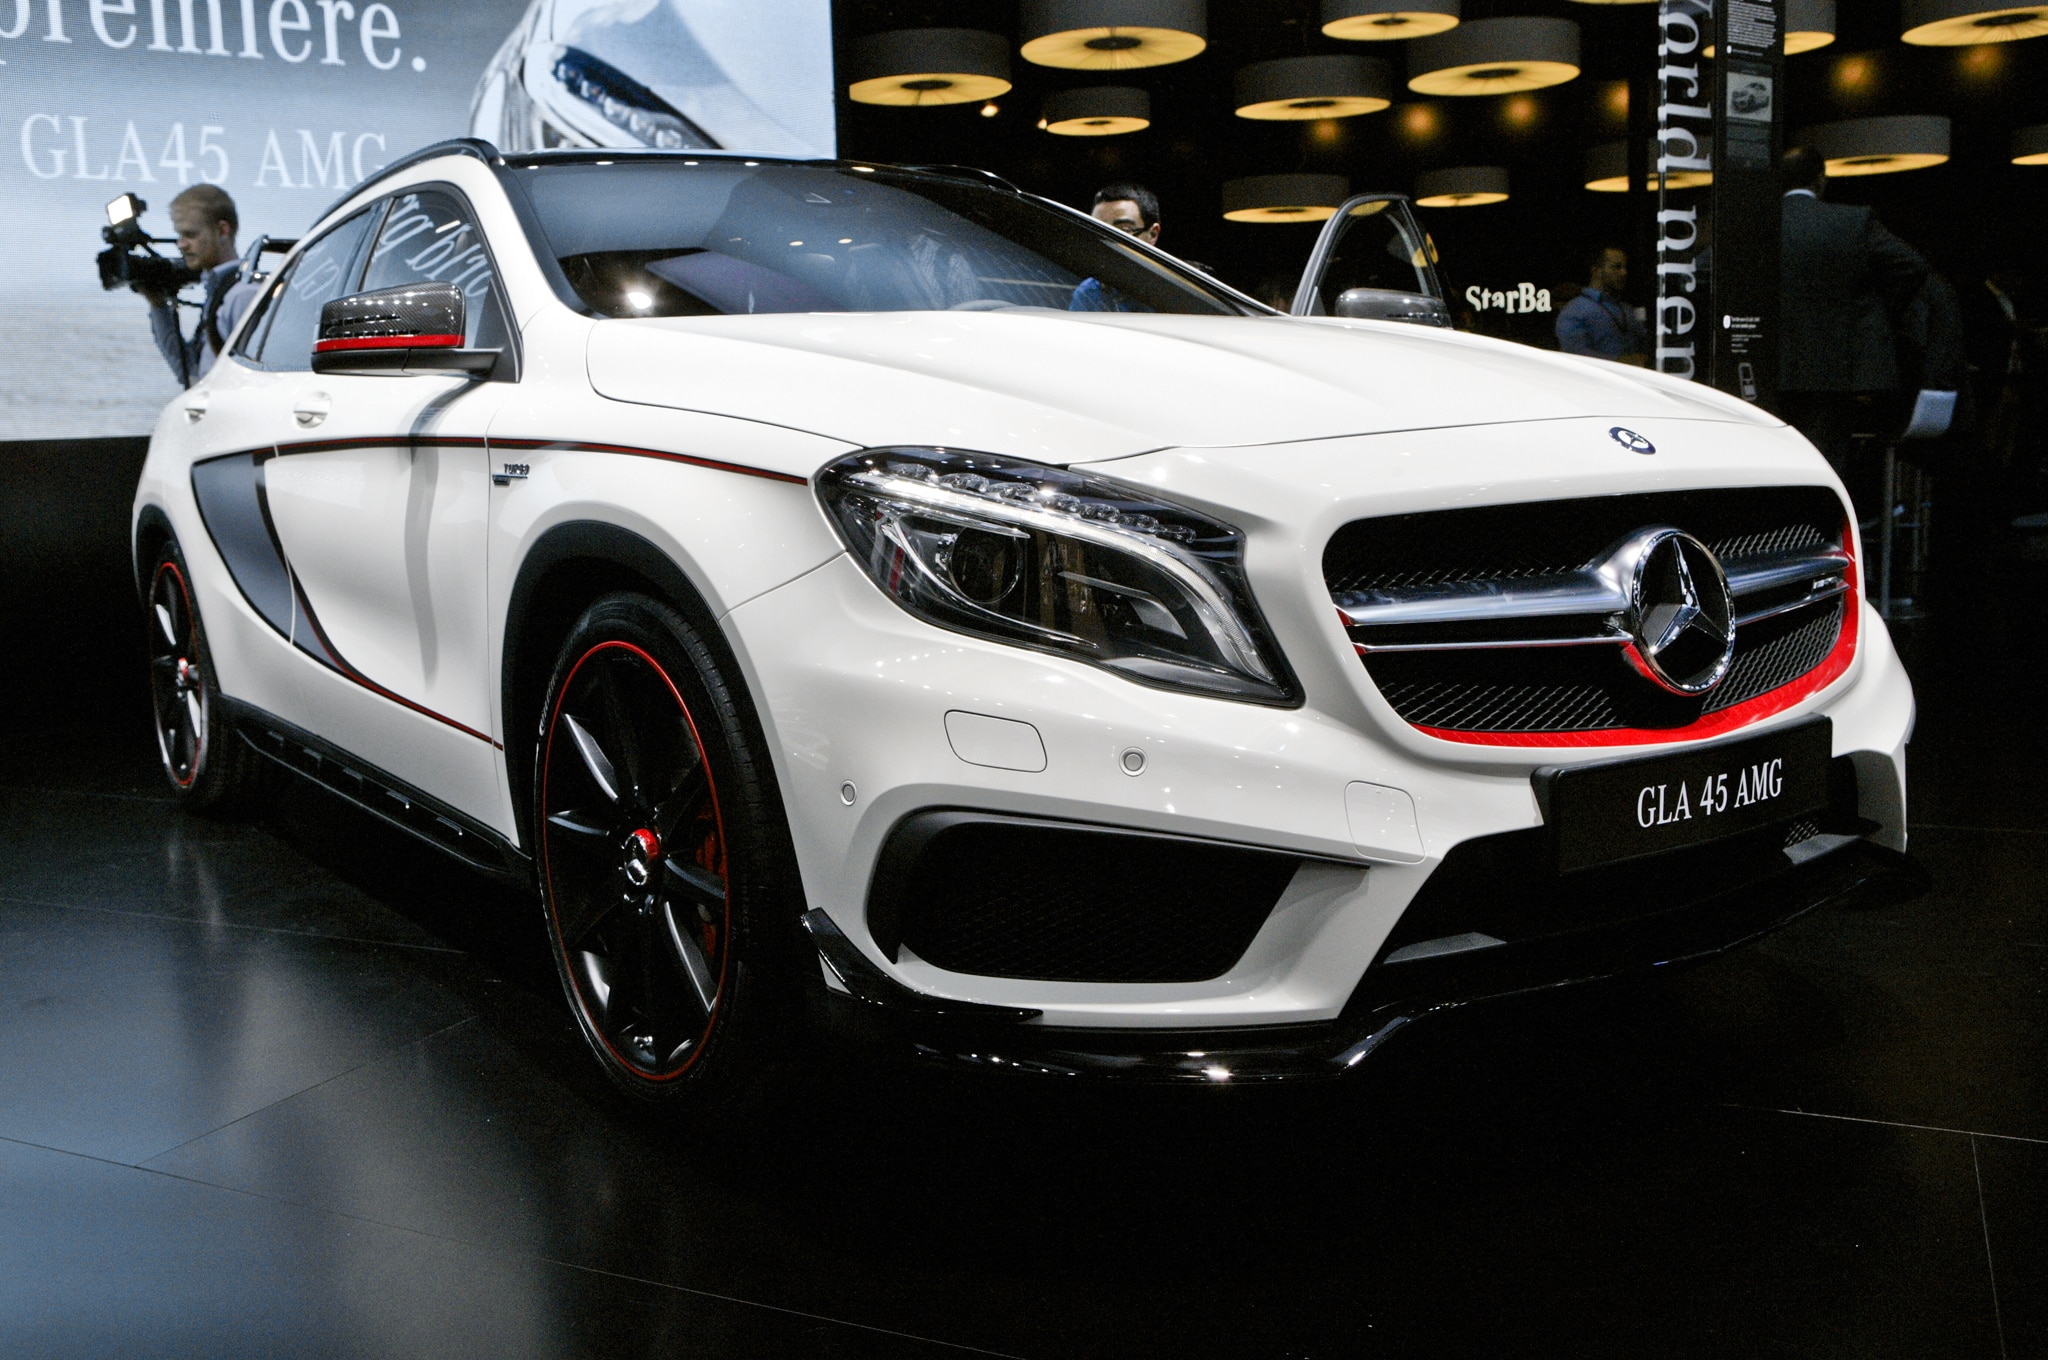 2015 Mercedes Benz GLA45 AMG Front View2